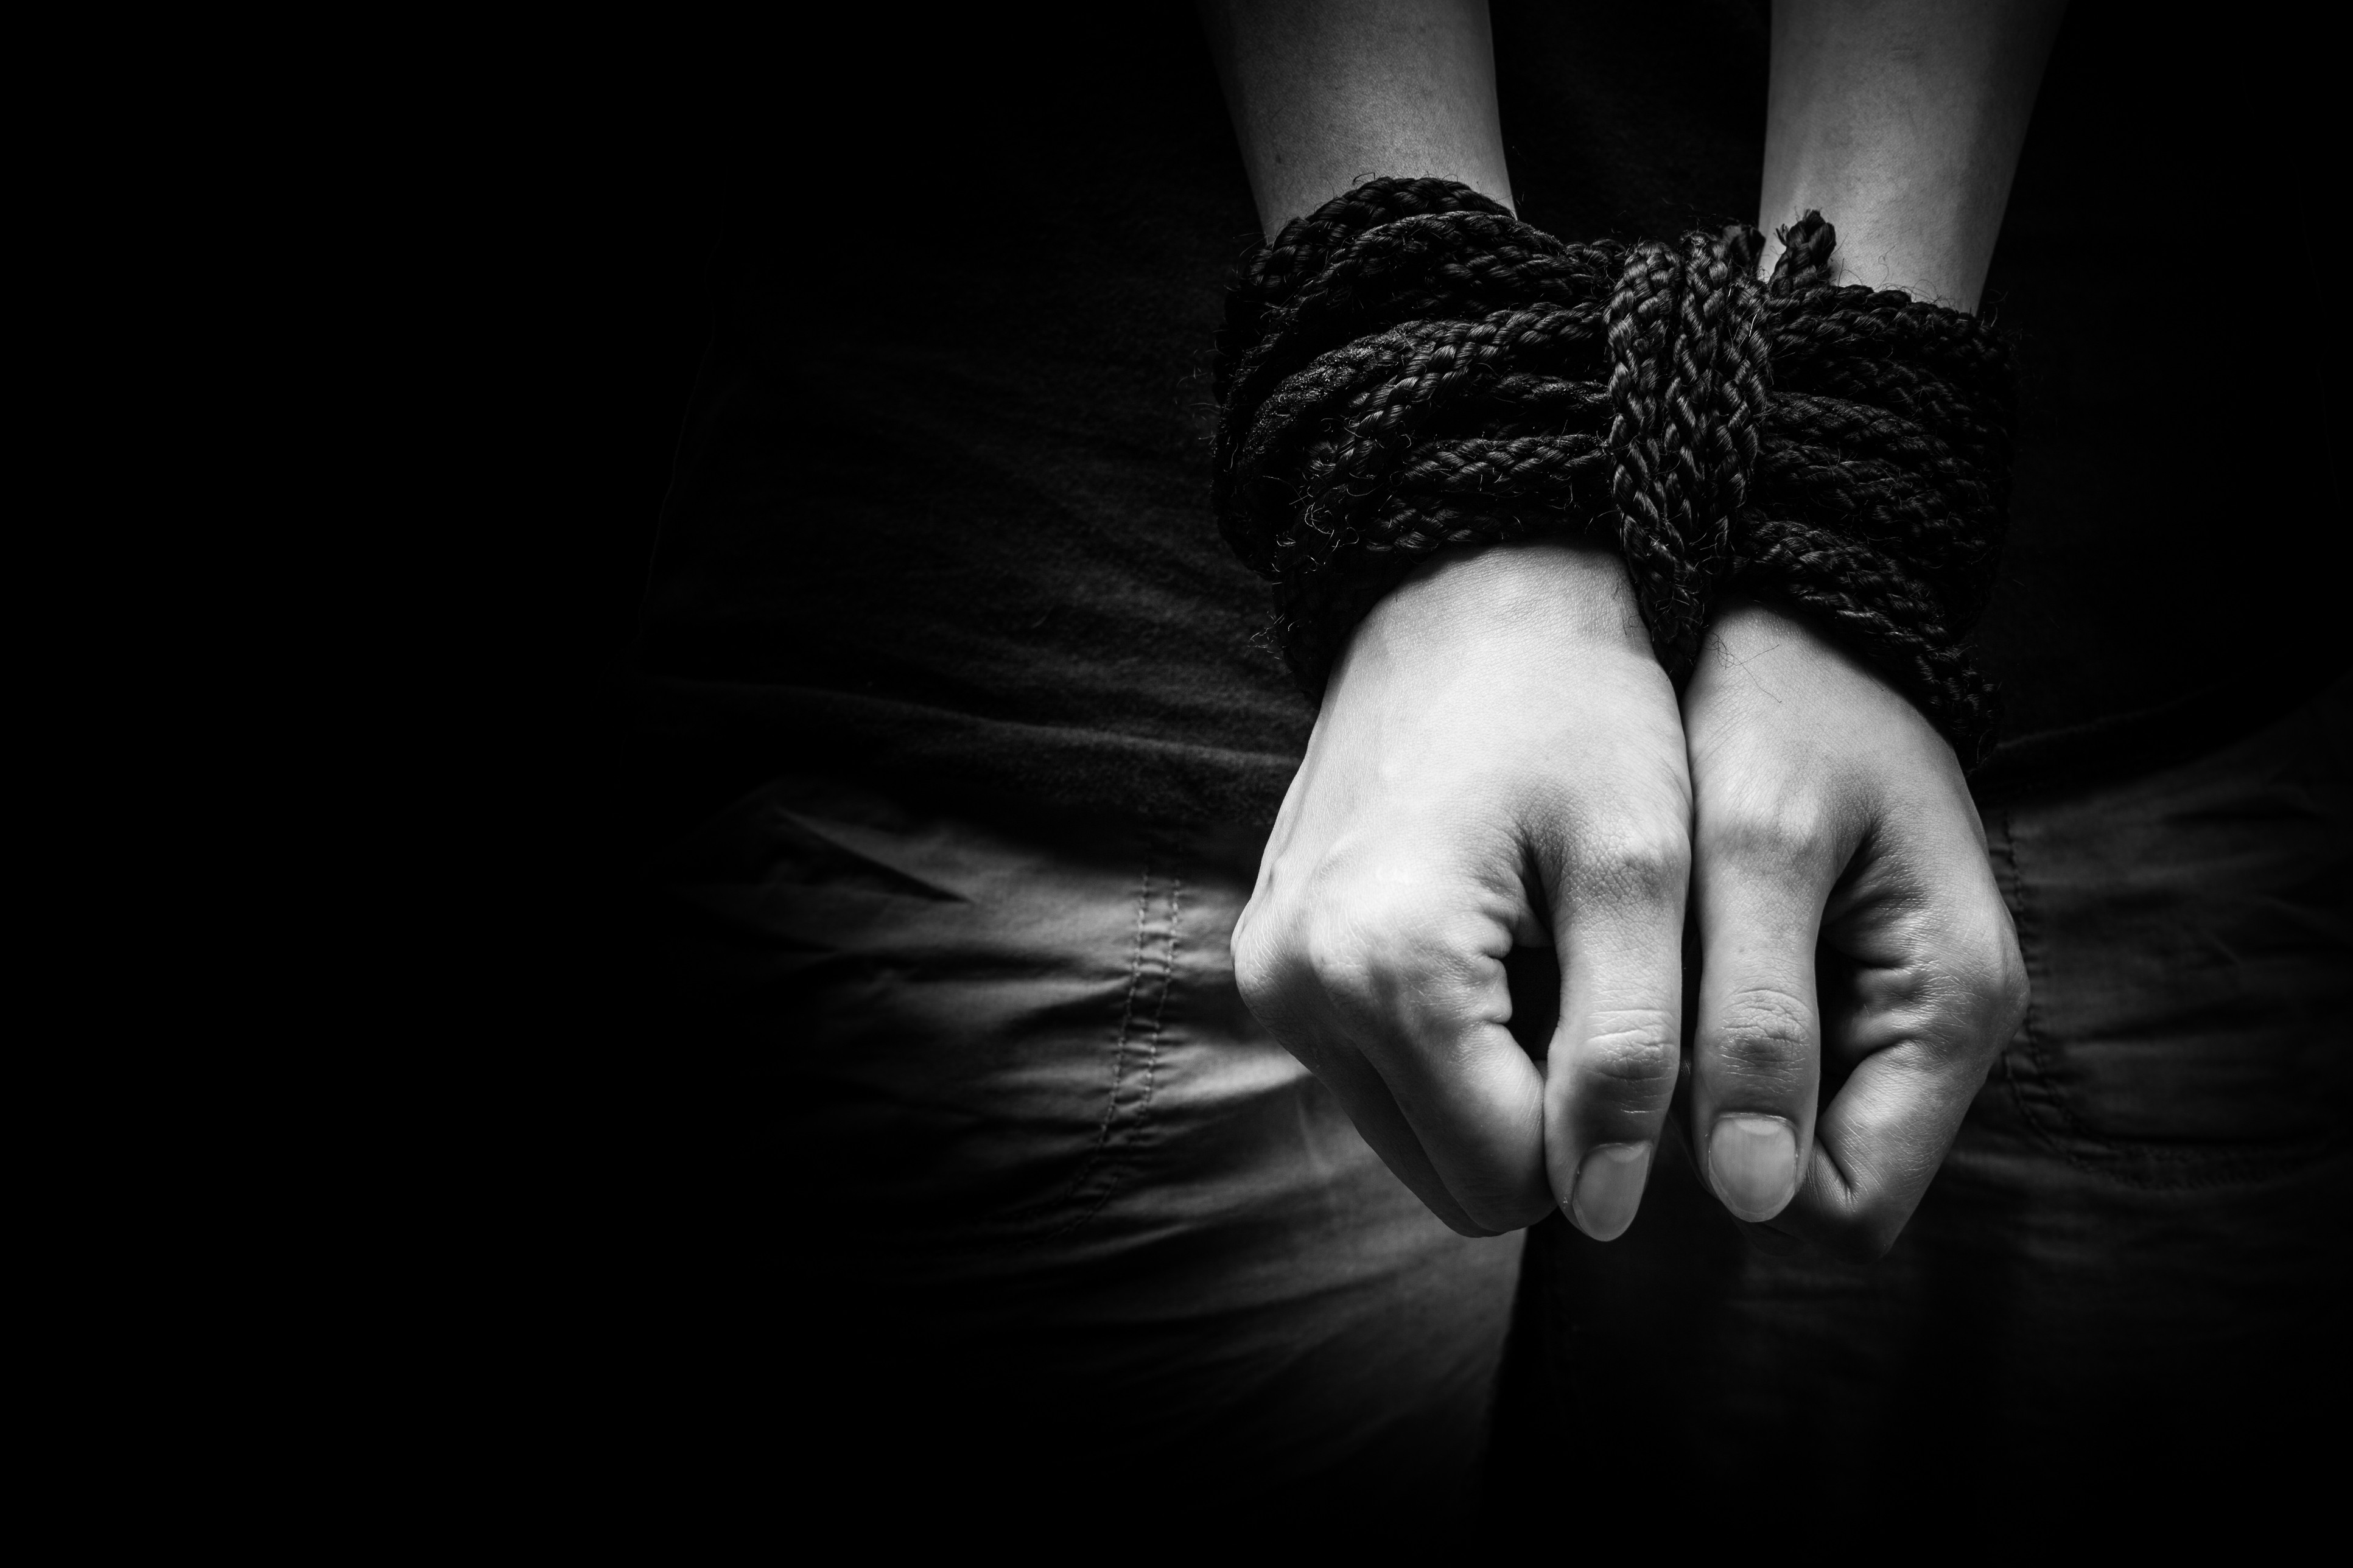 Human trafficking & Modern Day Slavery in the Fashion Industry